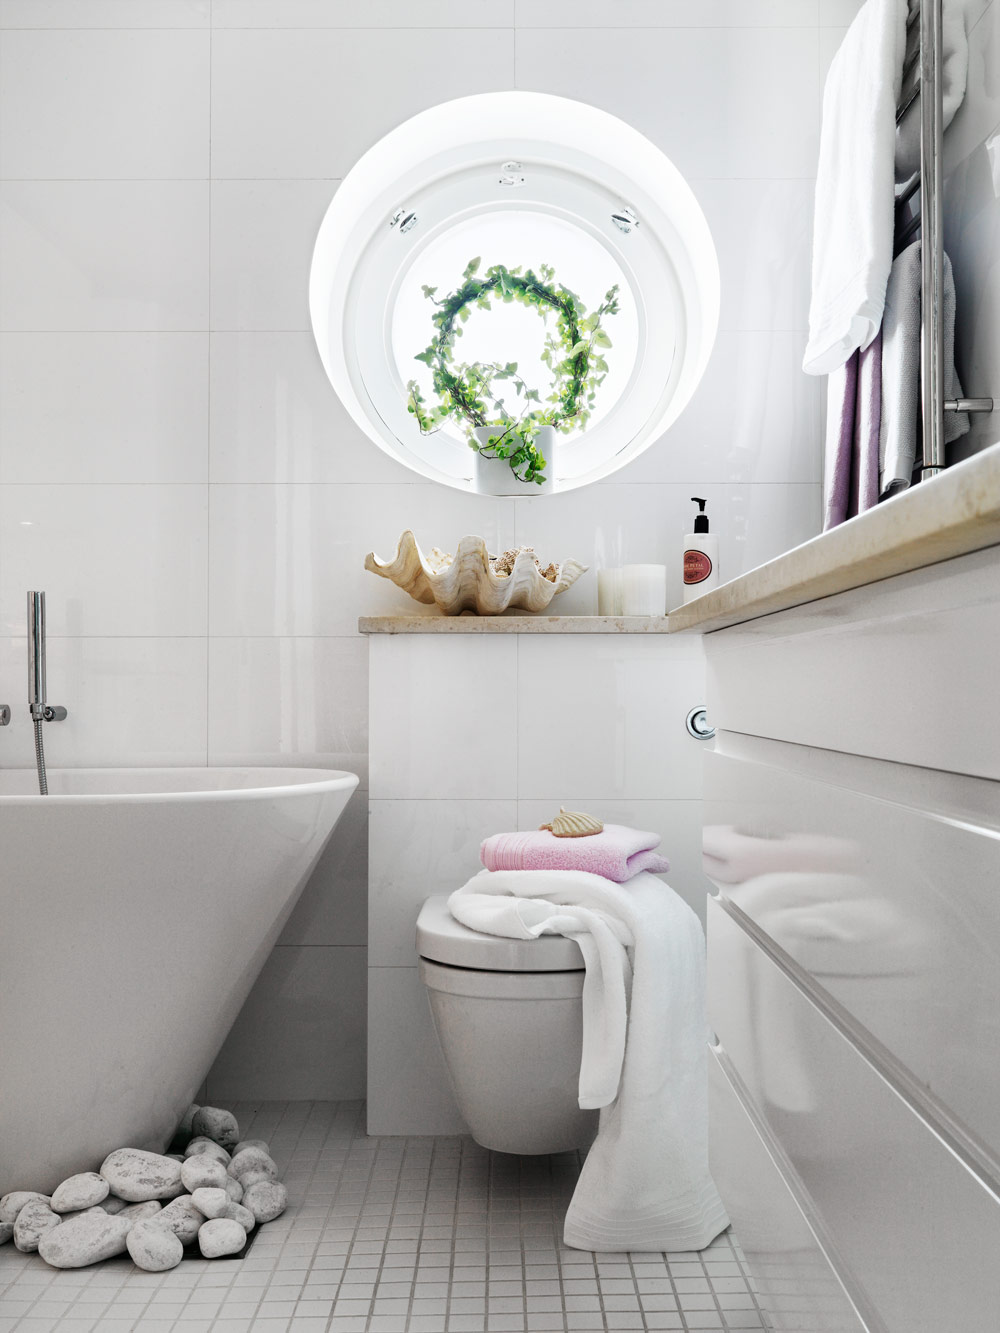 Stylish small bathroom with an unusual decor digsdigs for Pics of bathroom decor